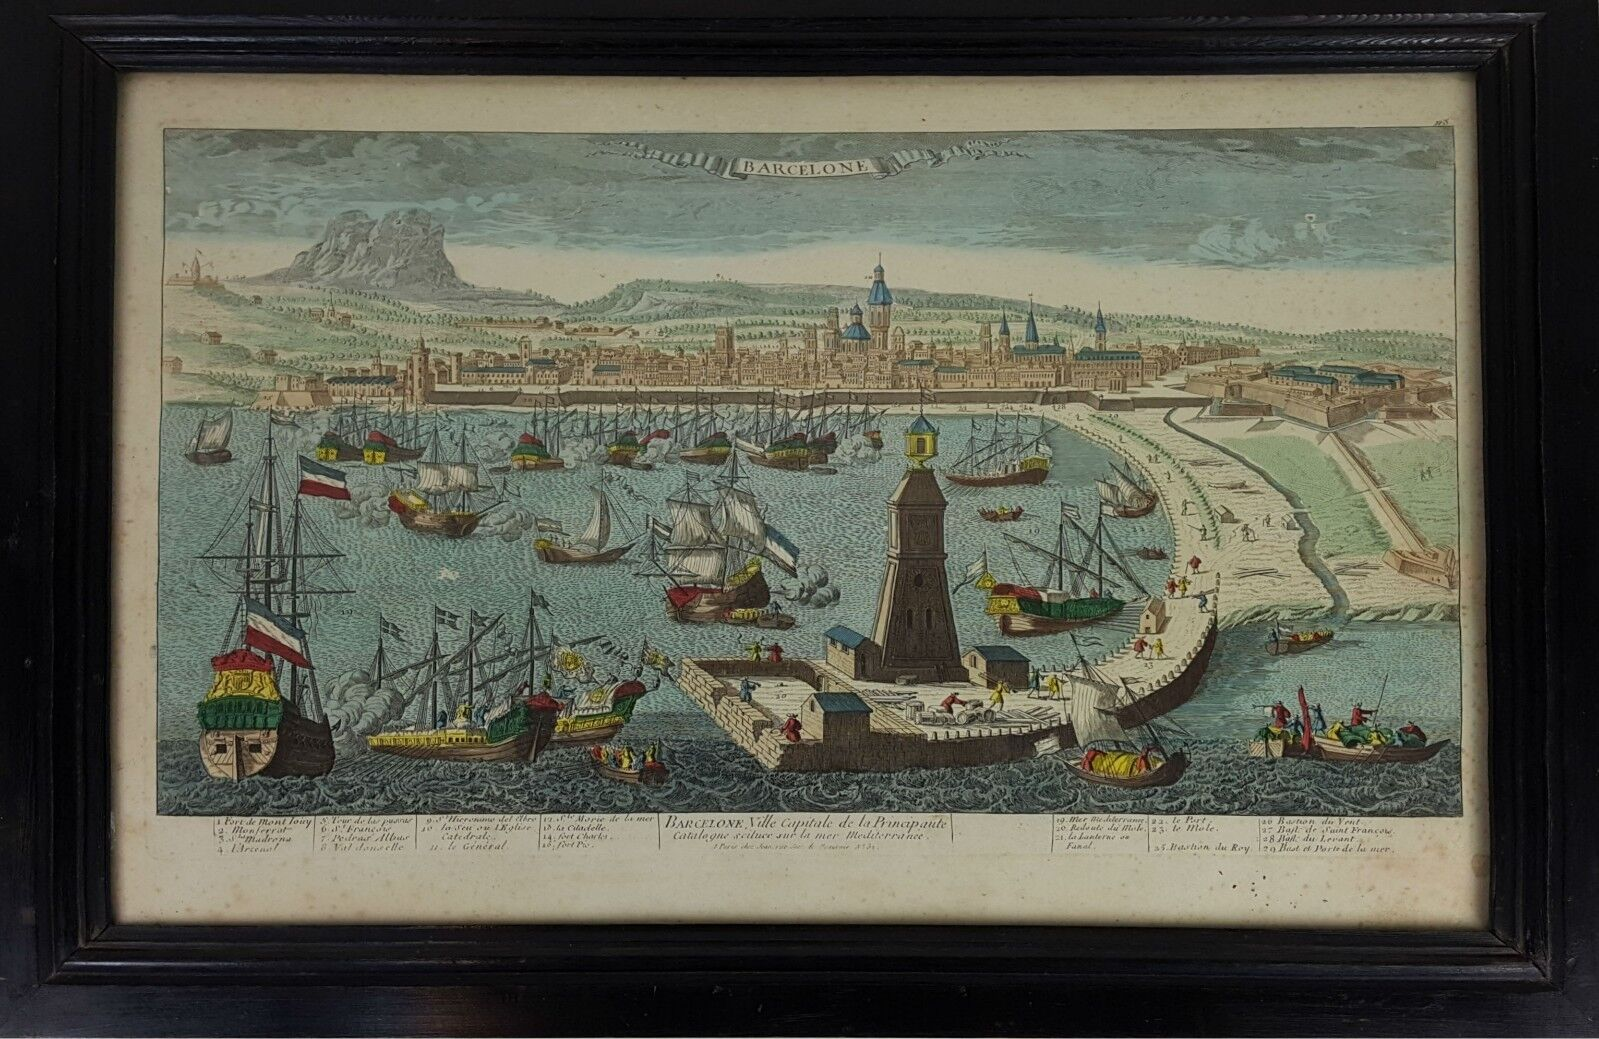 PORT OF BARCELONA CITY. COLORED ENGRAVING ON PAPER. 18TH-19TH CENTURY.